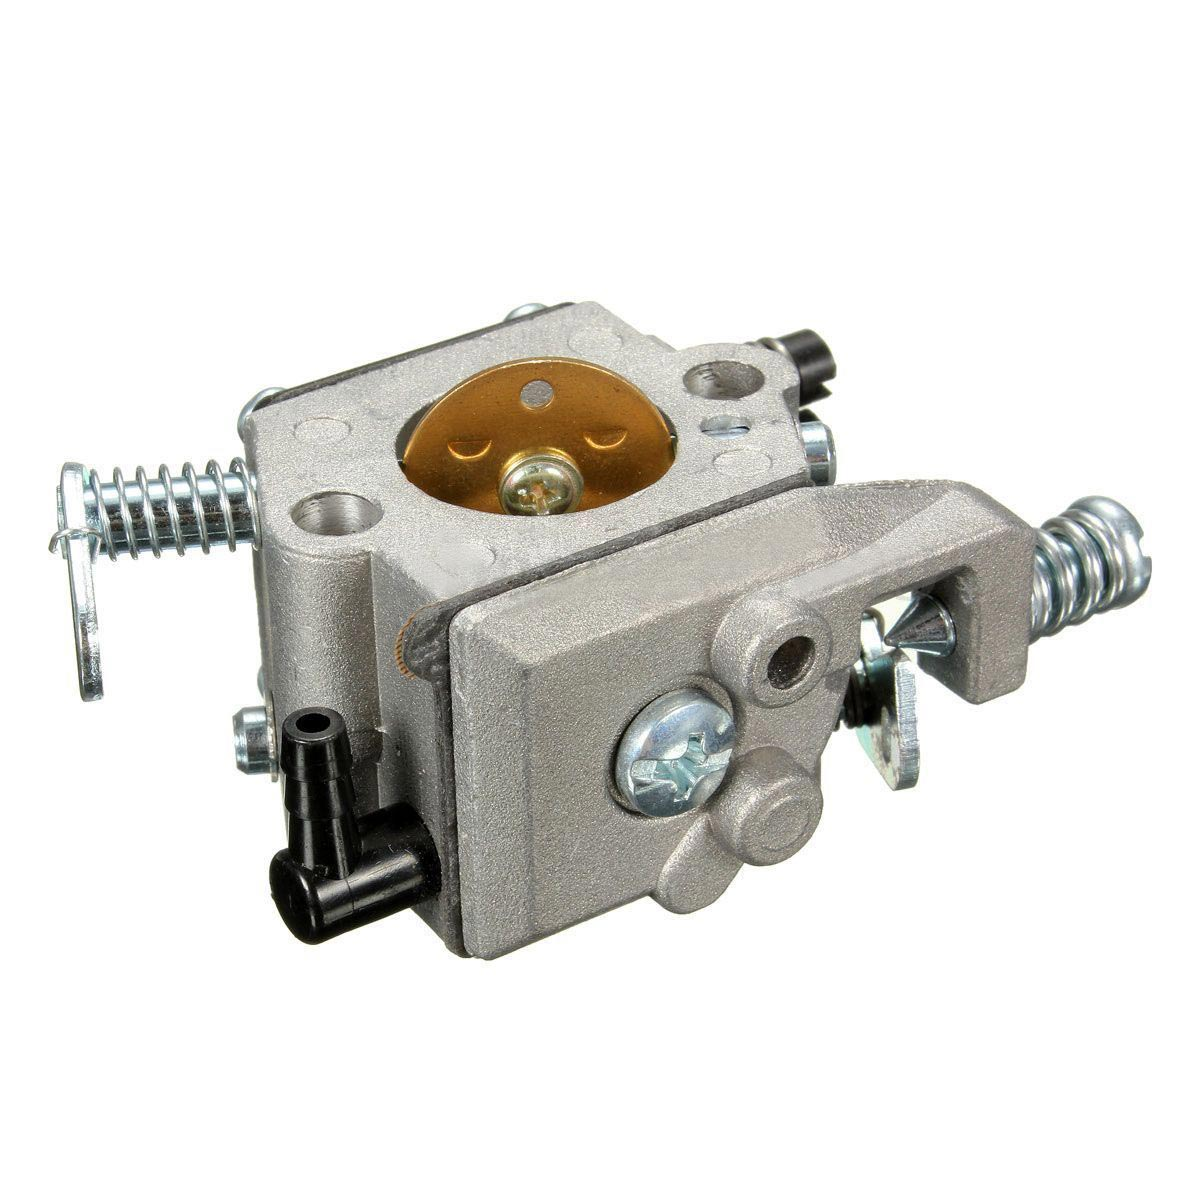 High Quality Carburetor Carb For Type 021 023 025 MS210 MS230 MS250 Trimmer Chainsaw WT 286 C1QS11E